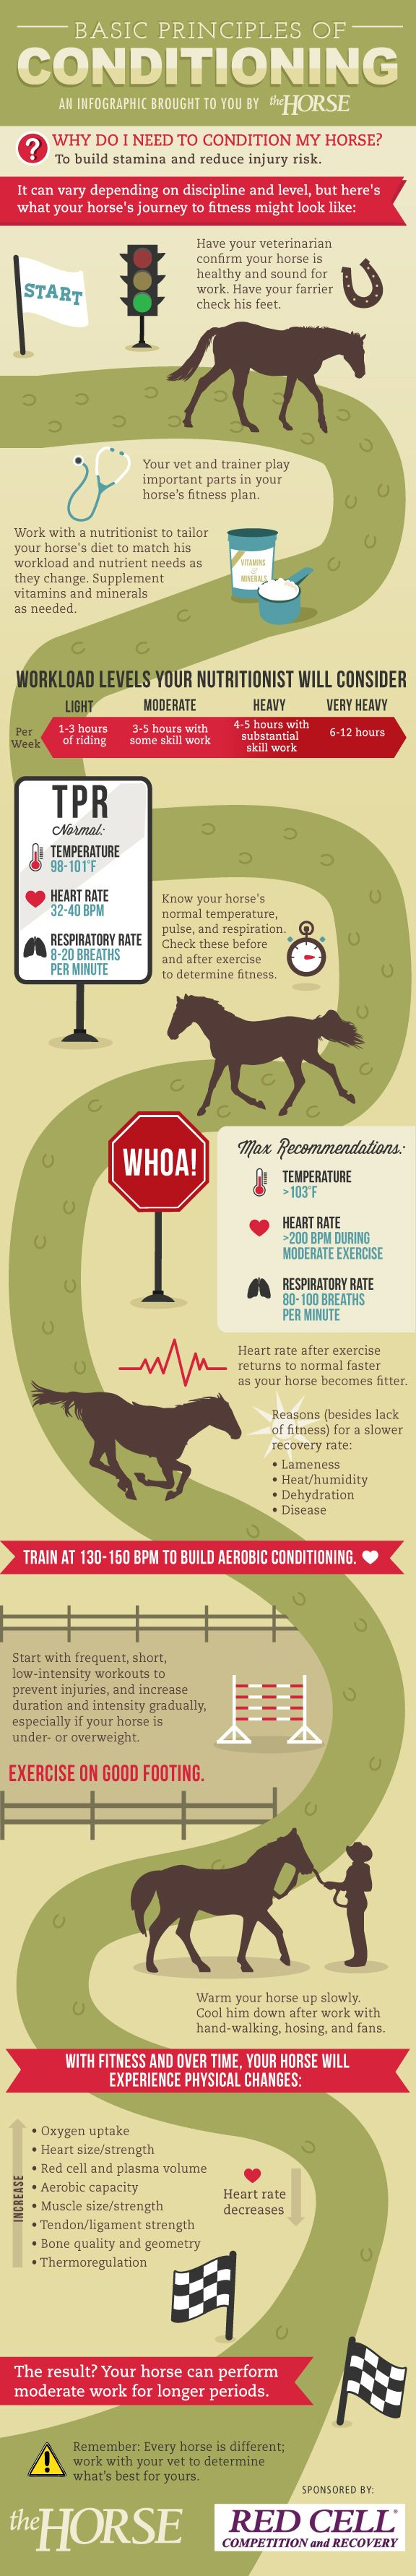 [INFOGRAPHIC] Basic Principles of Conditioning for Horses - TheHorse.com | Learn how to safely take your horse from flabby to fit step-by-step with our visual guide. Brought to you by TheHorse.com and Horse Health Products. #horses #conditioning #horsehealth